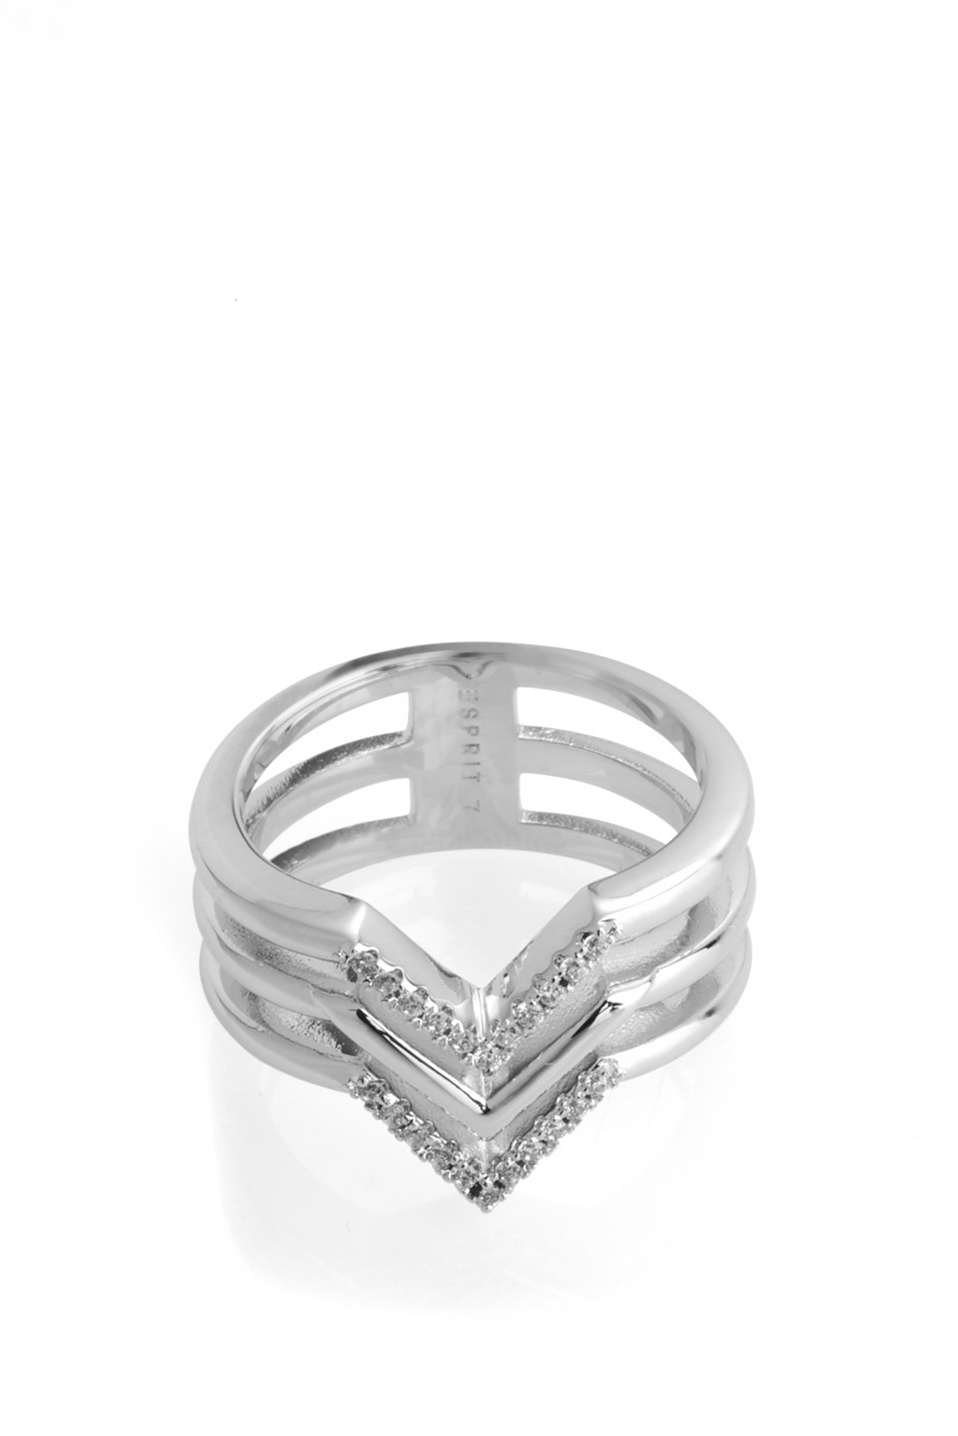 Esprit - Metal ring with zirconia stones